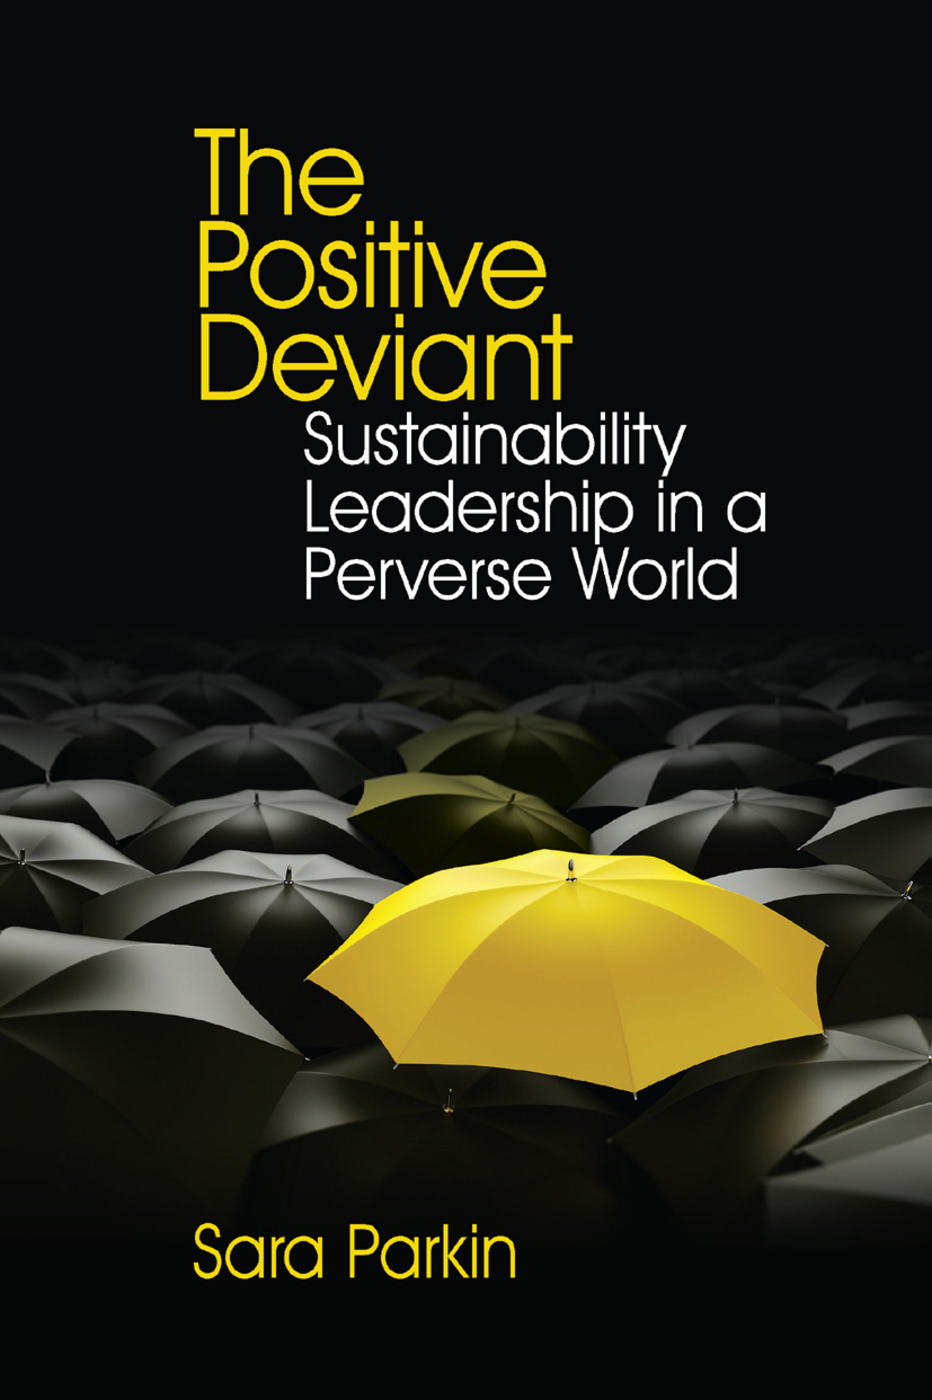 The Positive Deviant: Sustainability Leadership in a Perverse World book cover